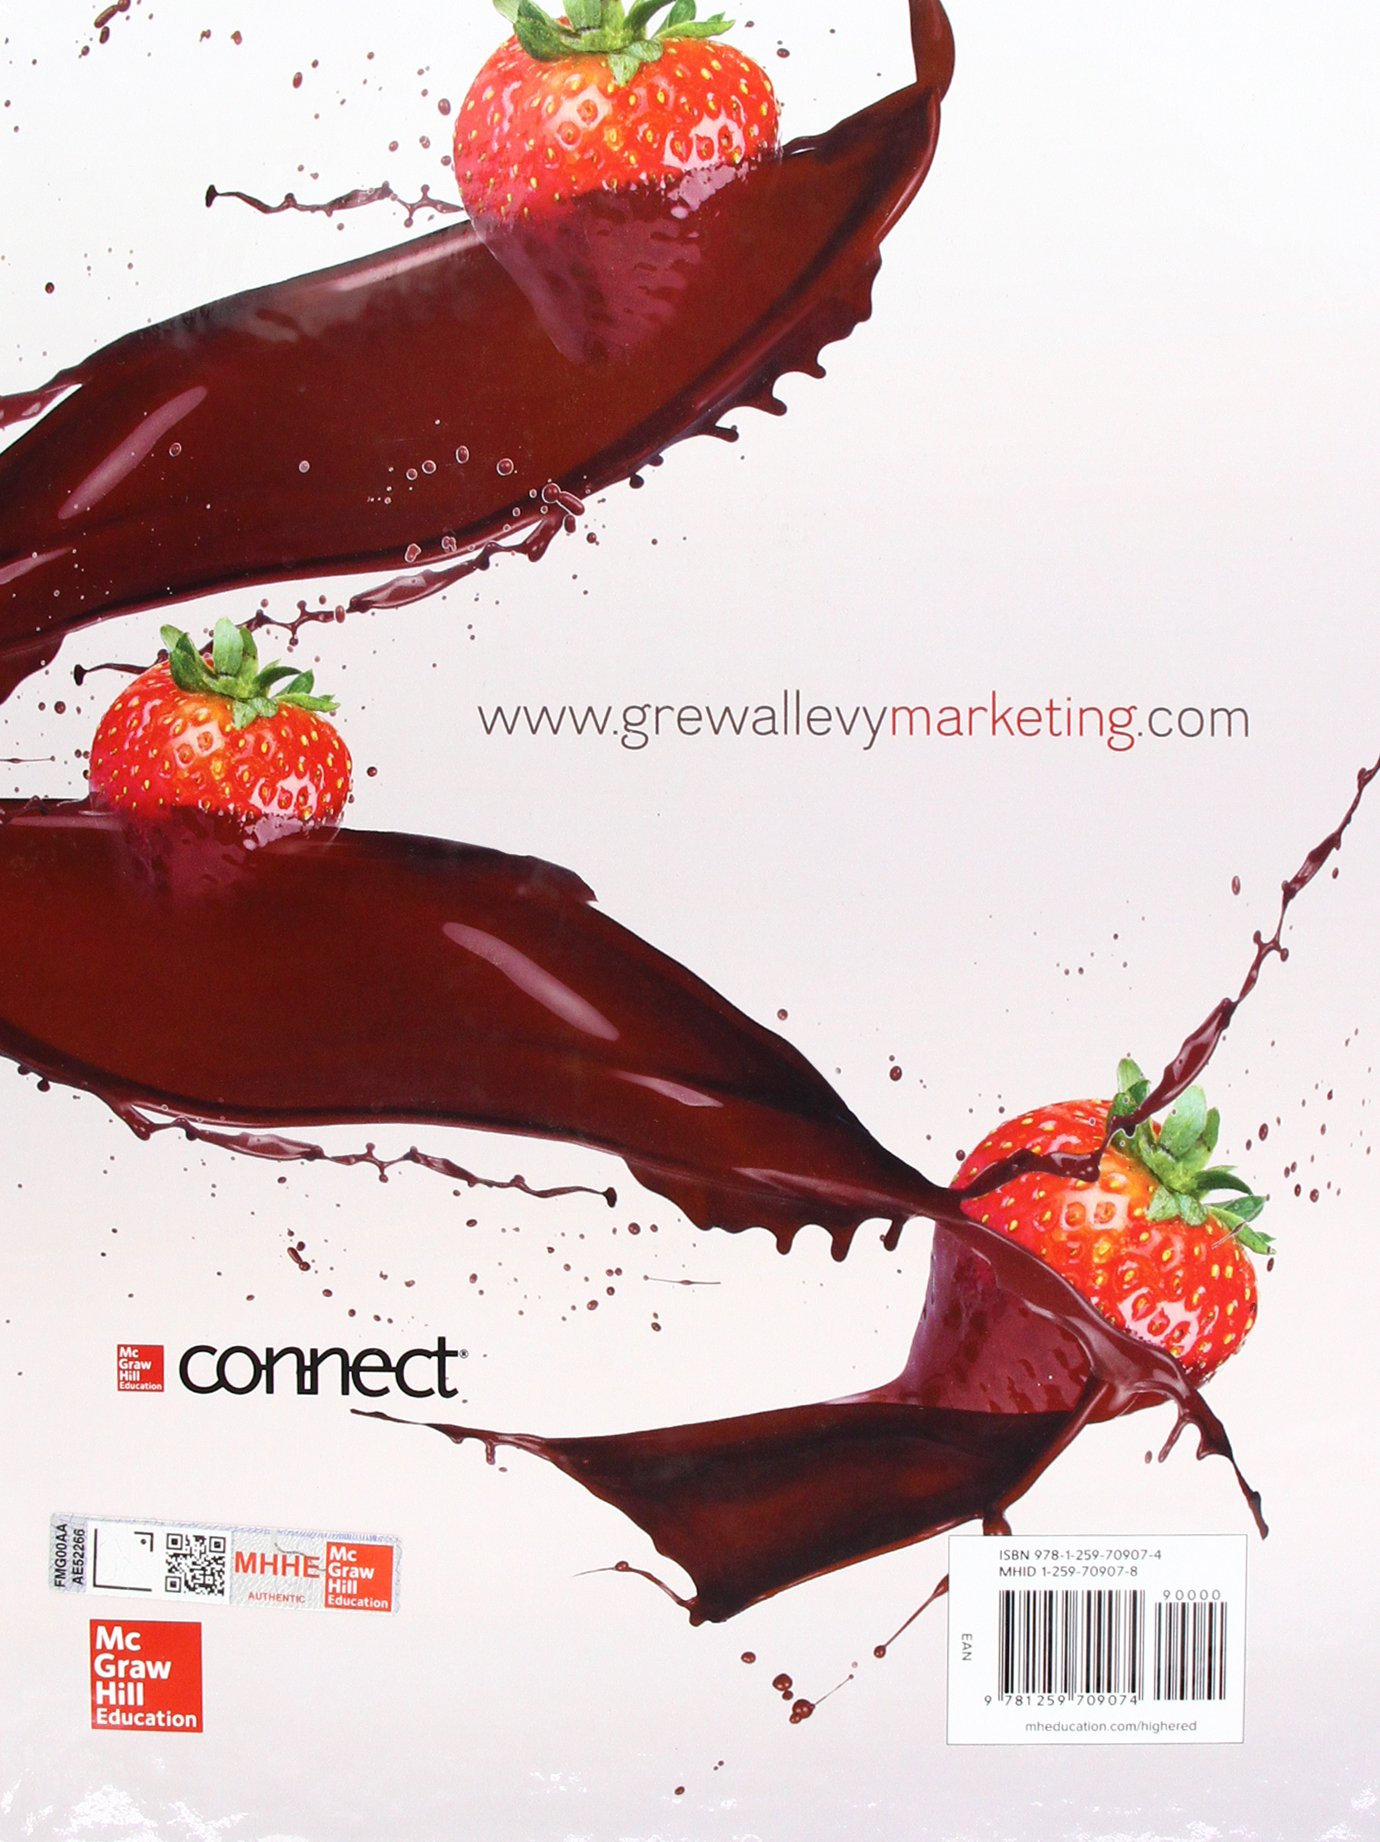 Marketing by McGraw-Hill Education